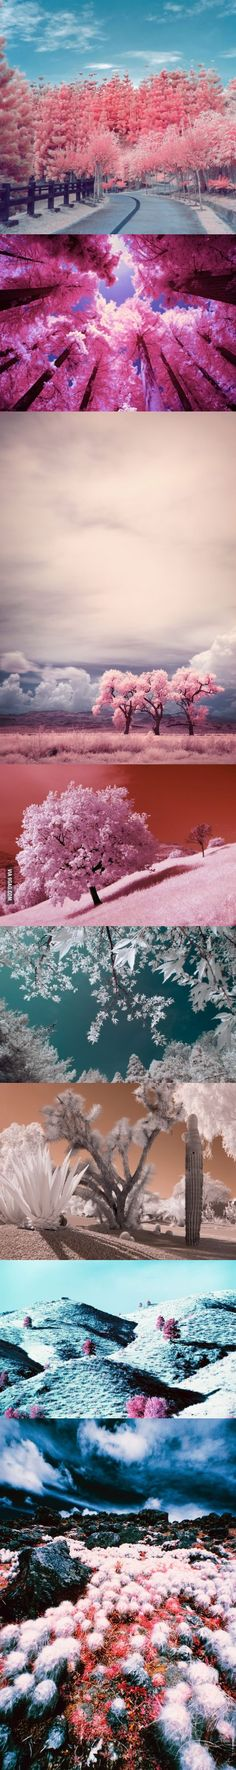 Spring as seen in Infrared